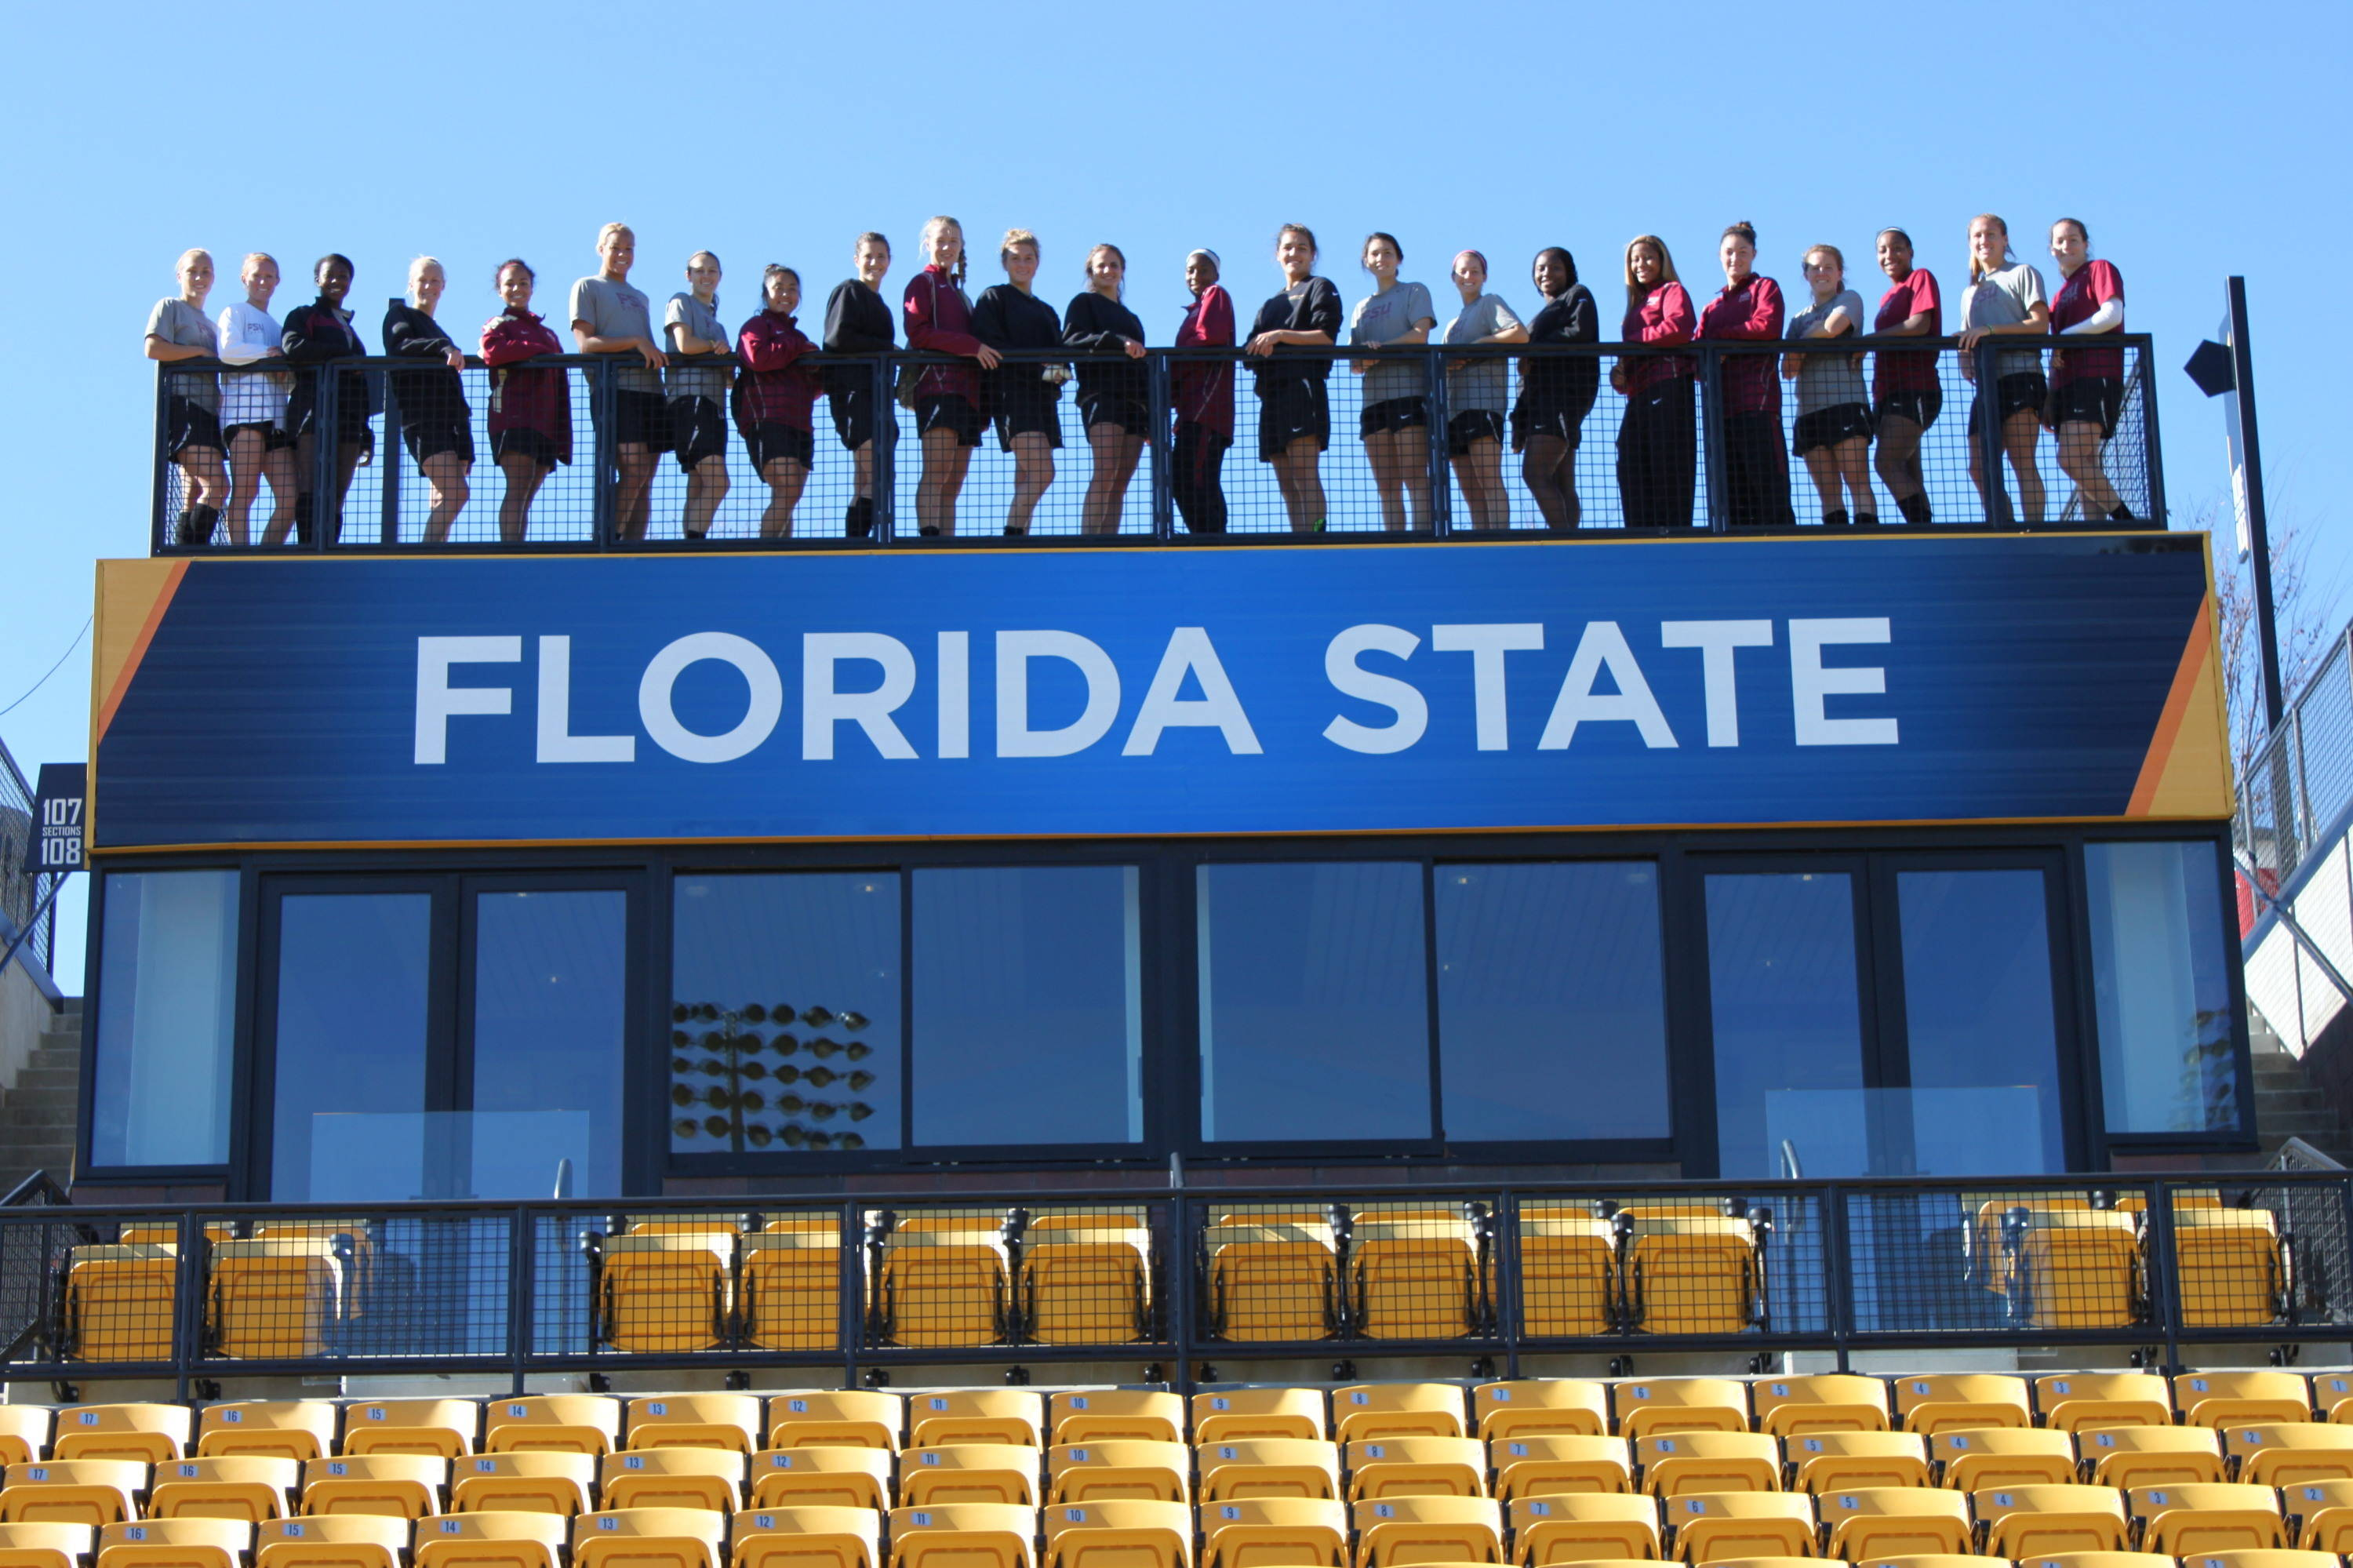 It wouldn't be official unless there was a picture with the Florida State banner.